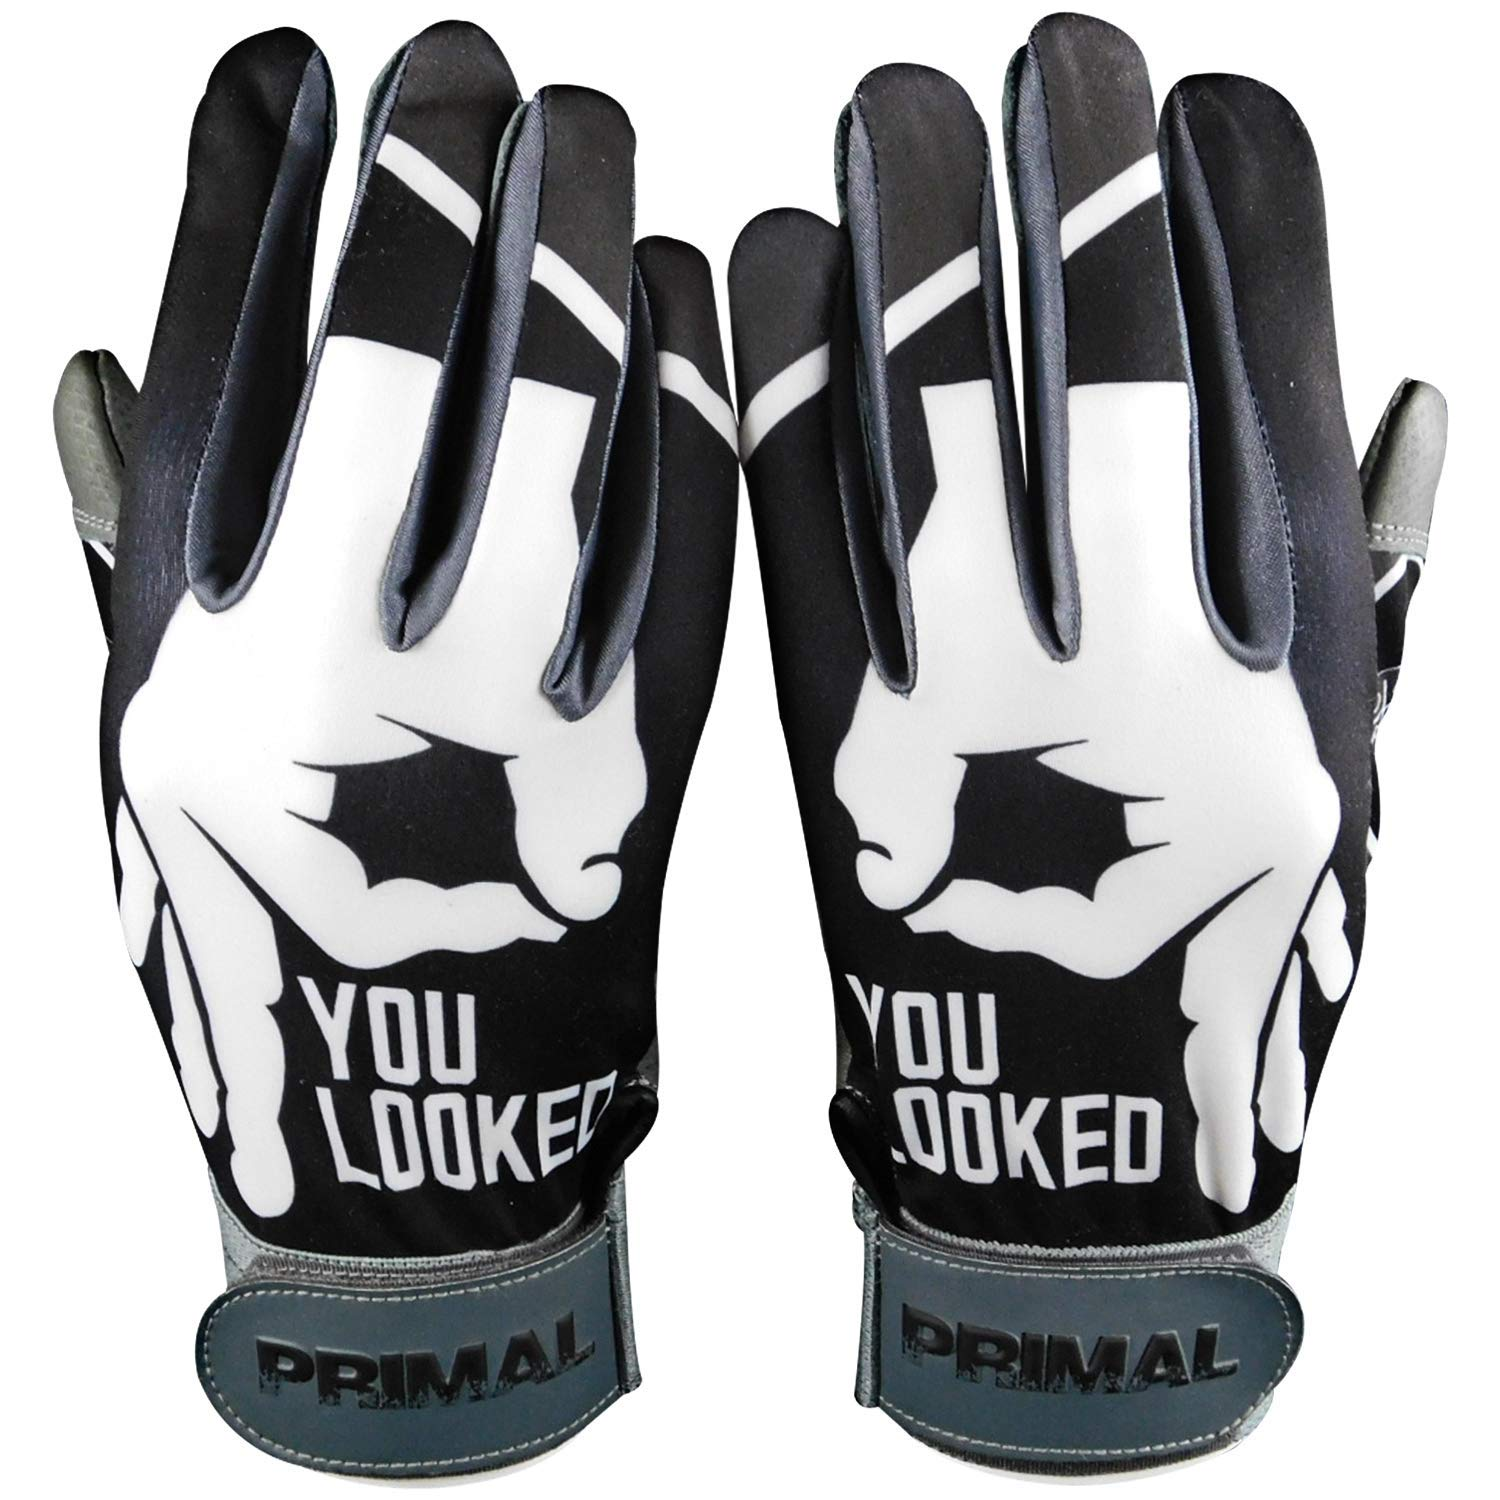 C1COOP You Looked Baseball Batting Gloves (Adult Medium)